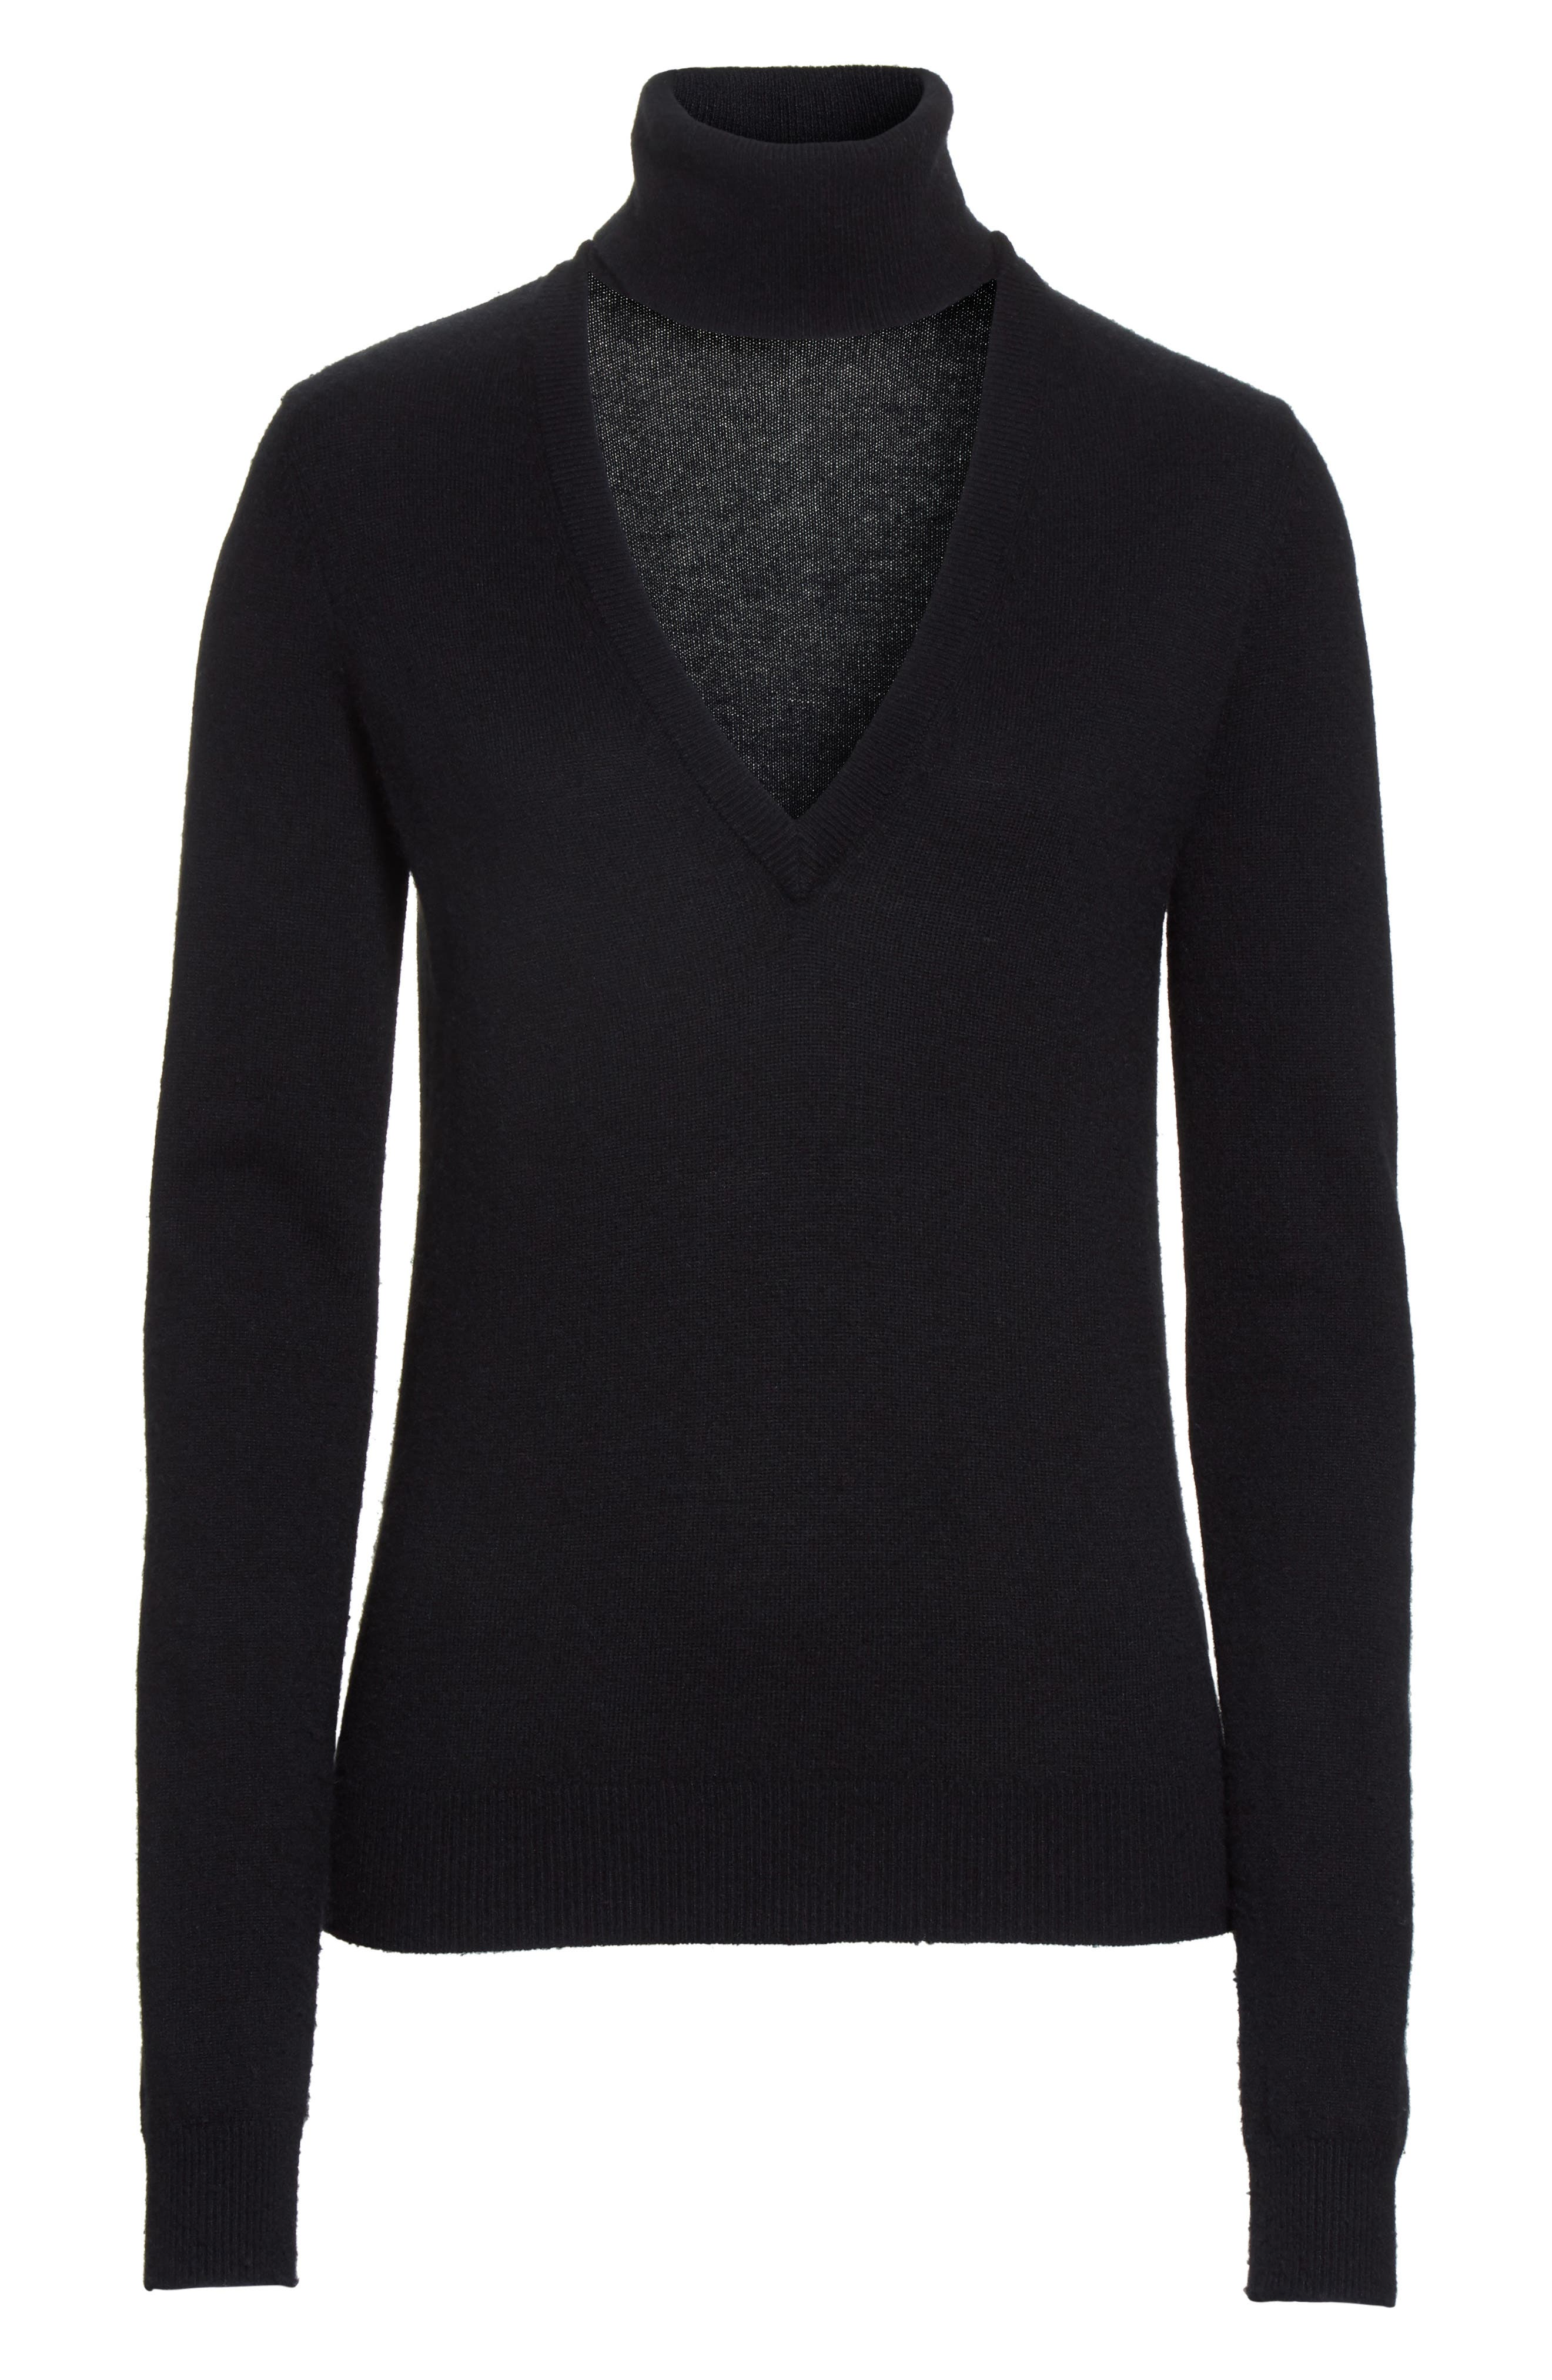 Cutout Turtleneck Cashmere Sweater,                             Alternate thumbnail 6, color,                             Black